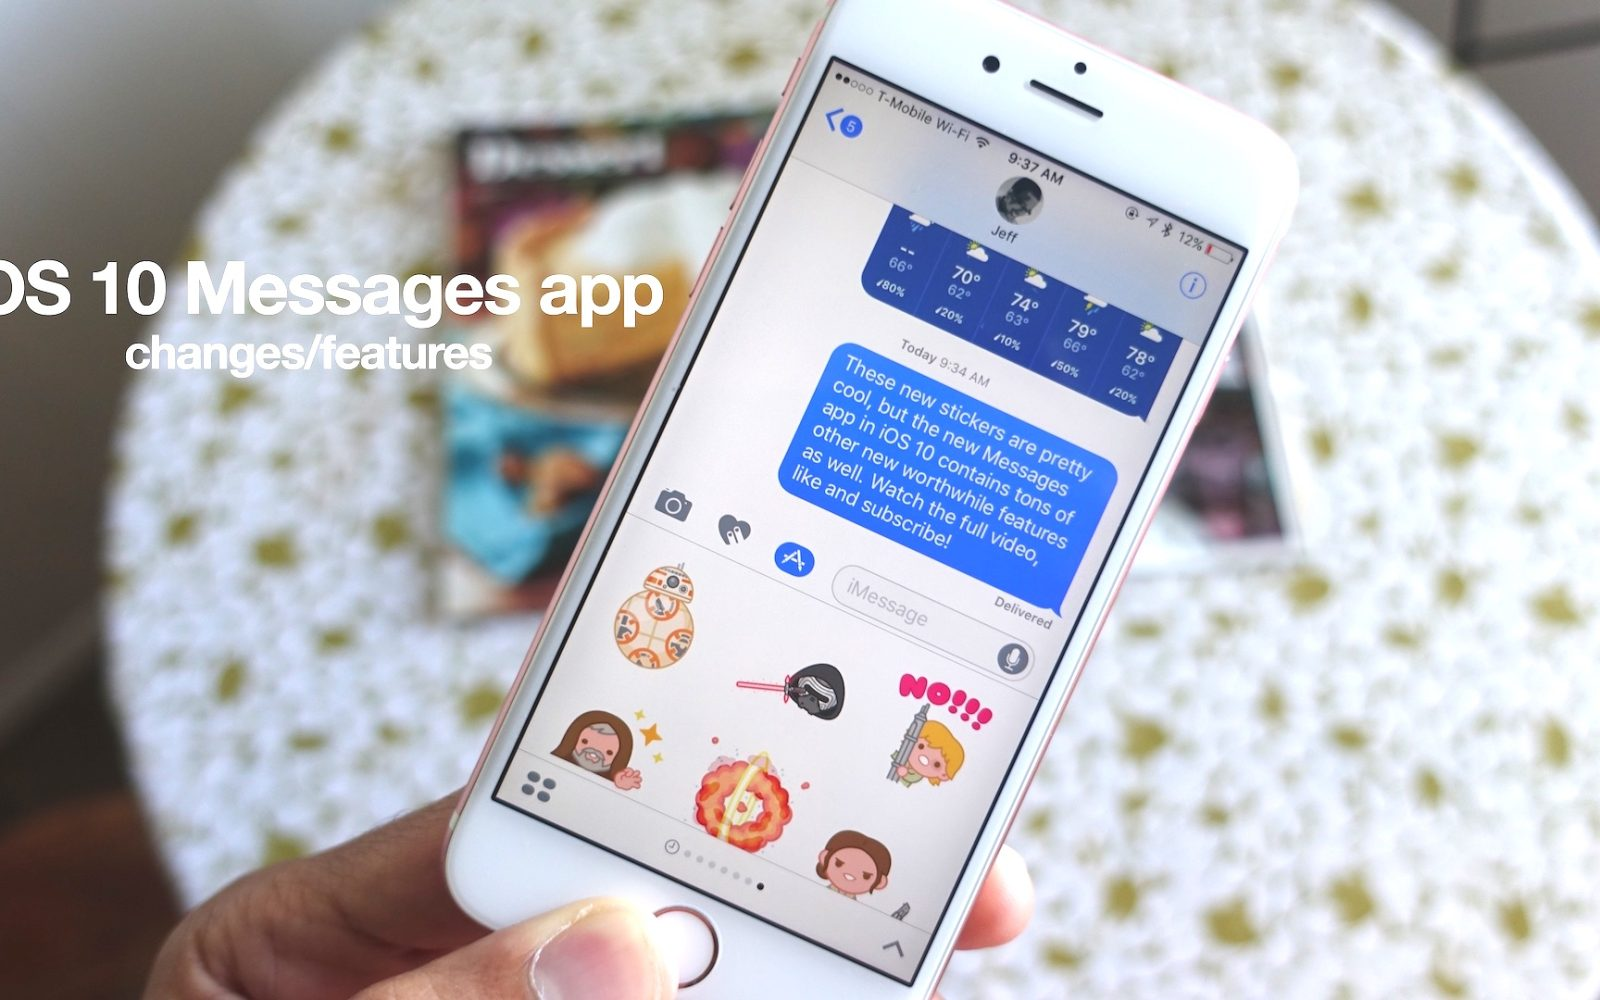 iOS 10: How to use stickers, iMessages apps, Digital Touch, rich